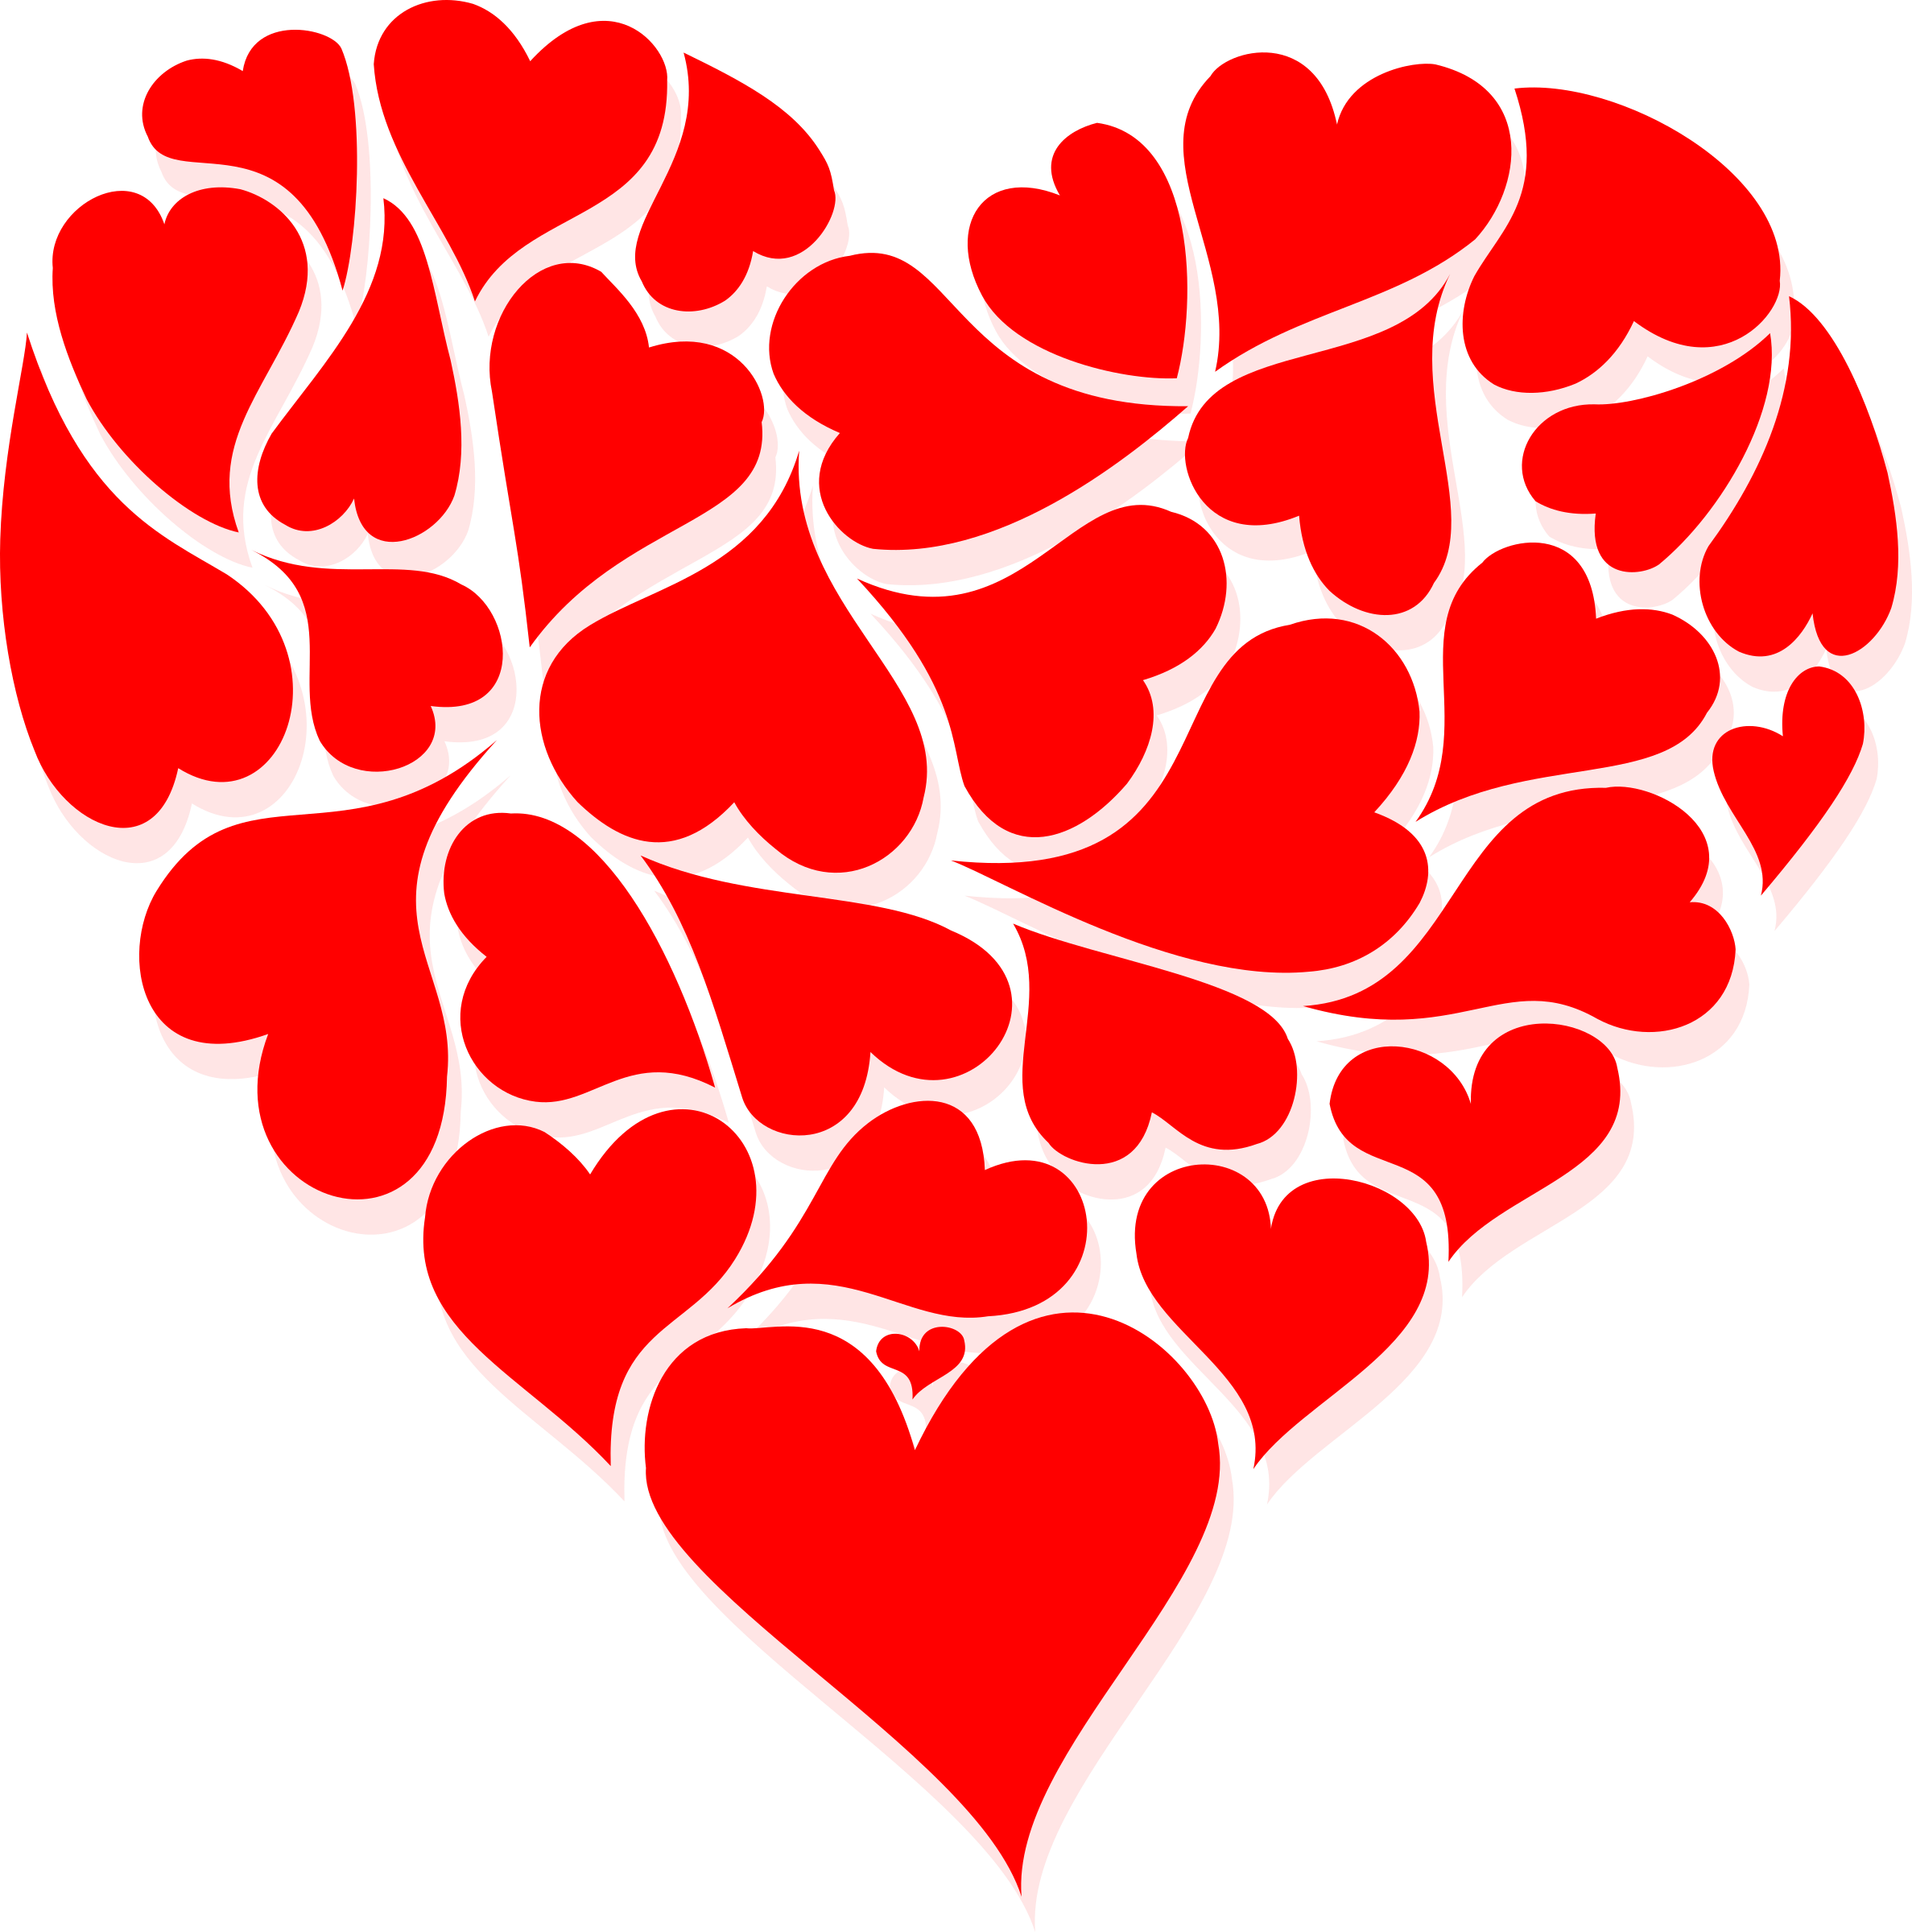 Cousins clipart class. Valentine s day can